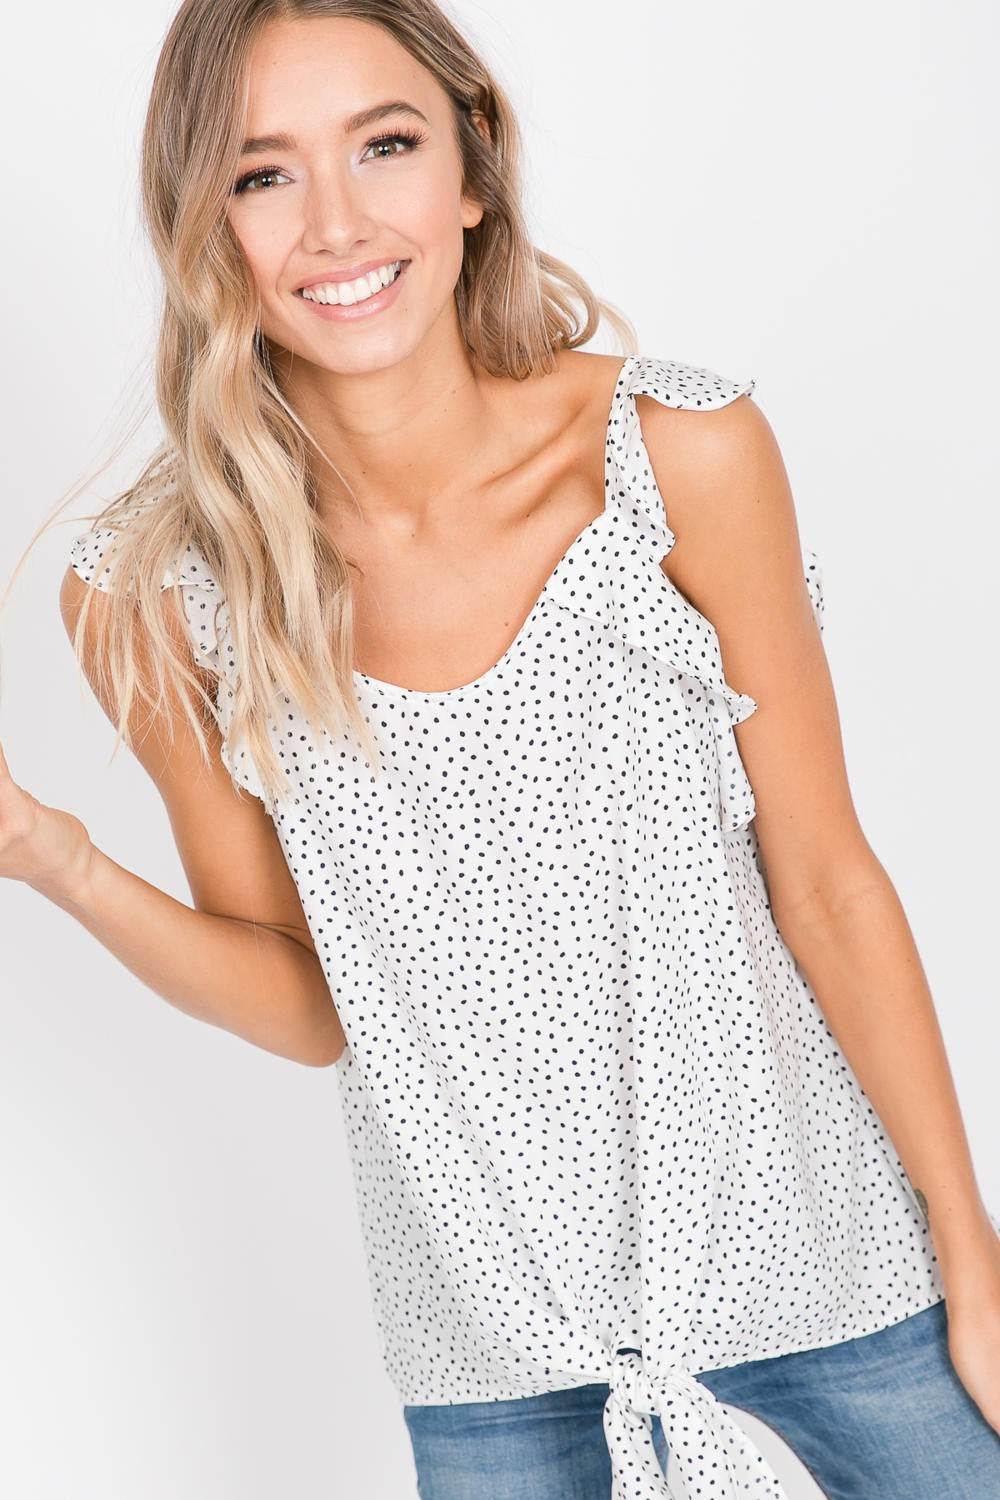 Hailey & Co Polka Dot Top